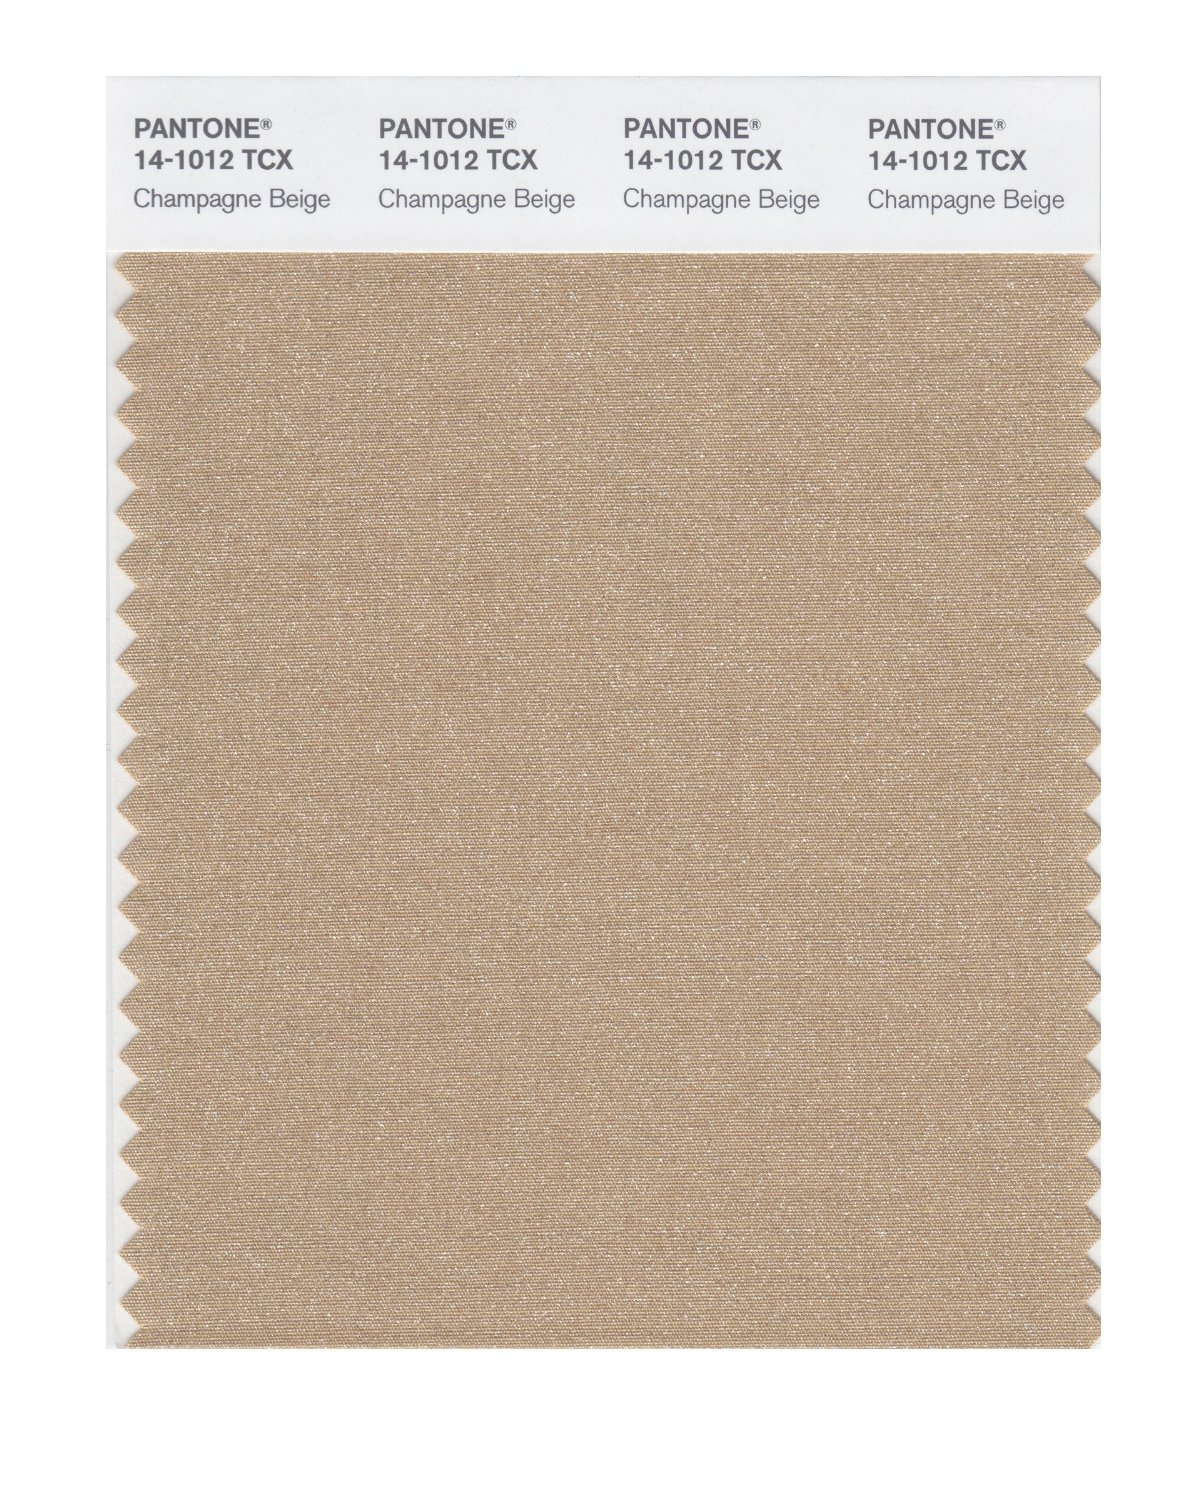 Pantone Smart Swatch 14-1012 Champagne Beige